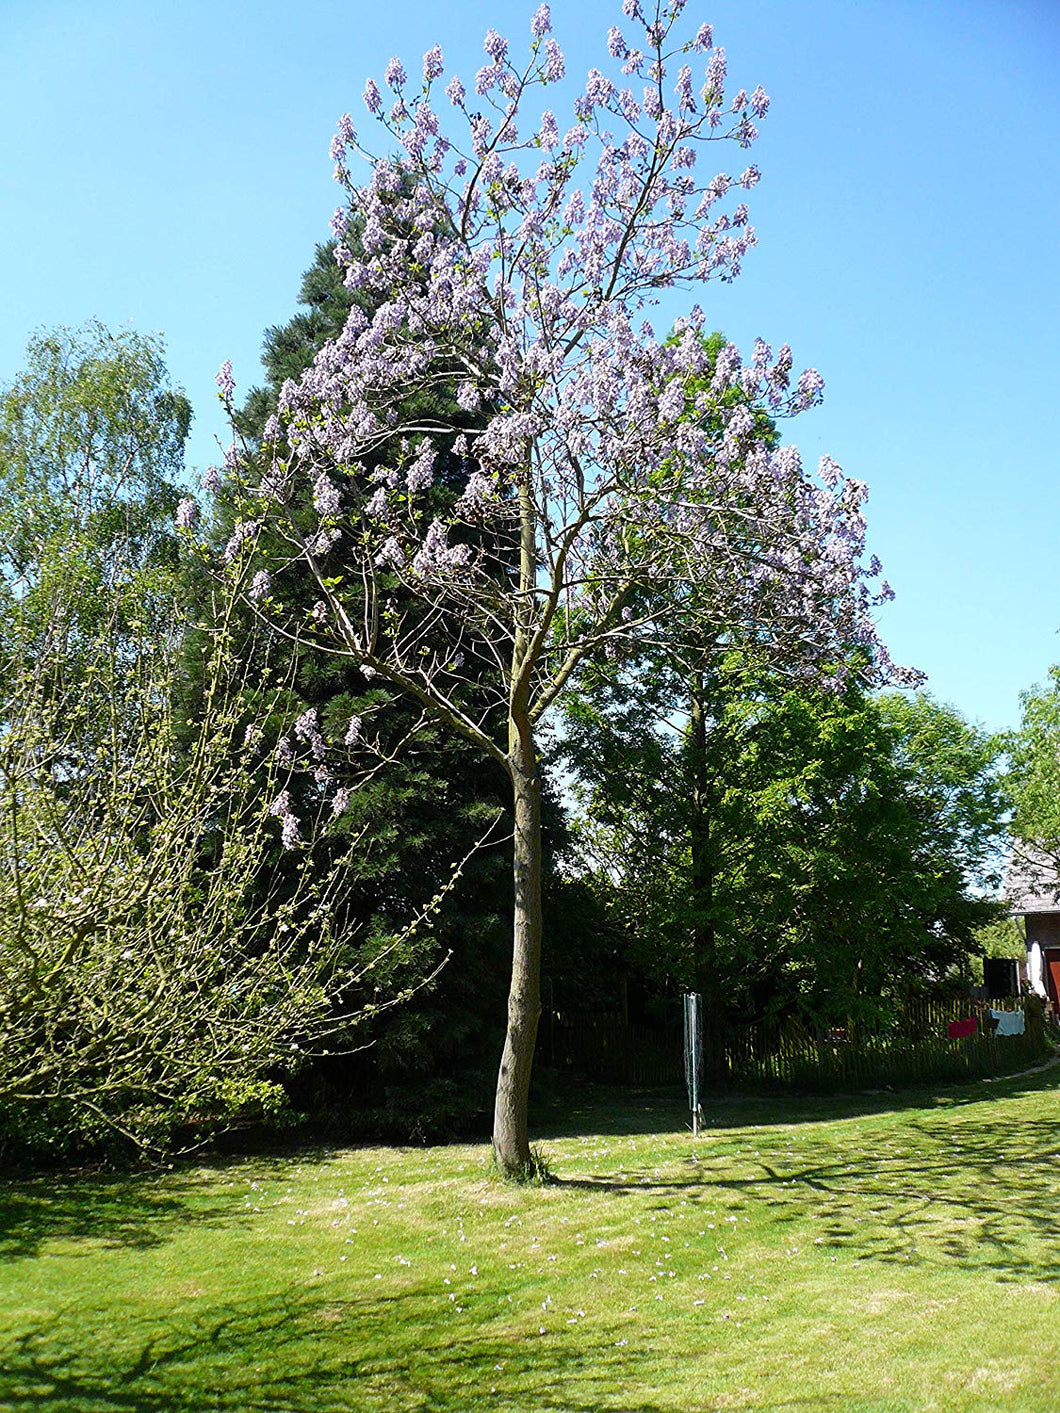 50 Seeds Pink Flowering Ornamental Tree - Paulownia elongata